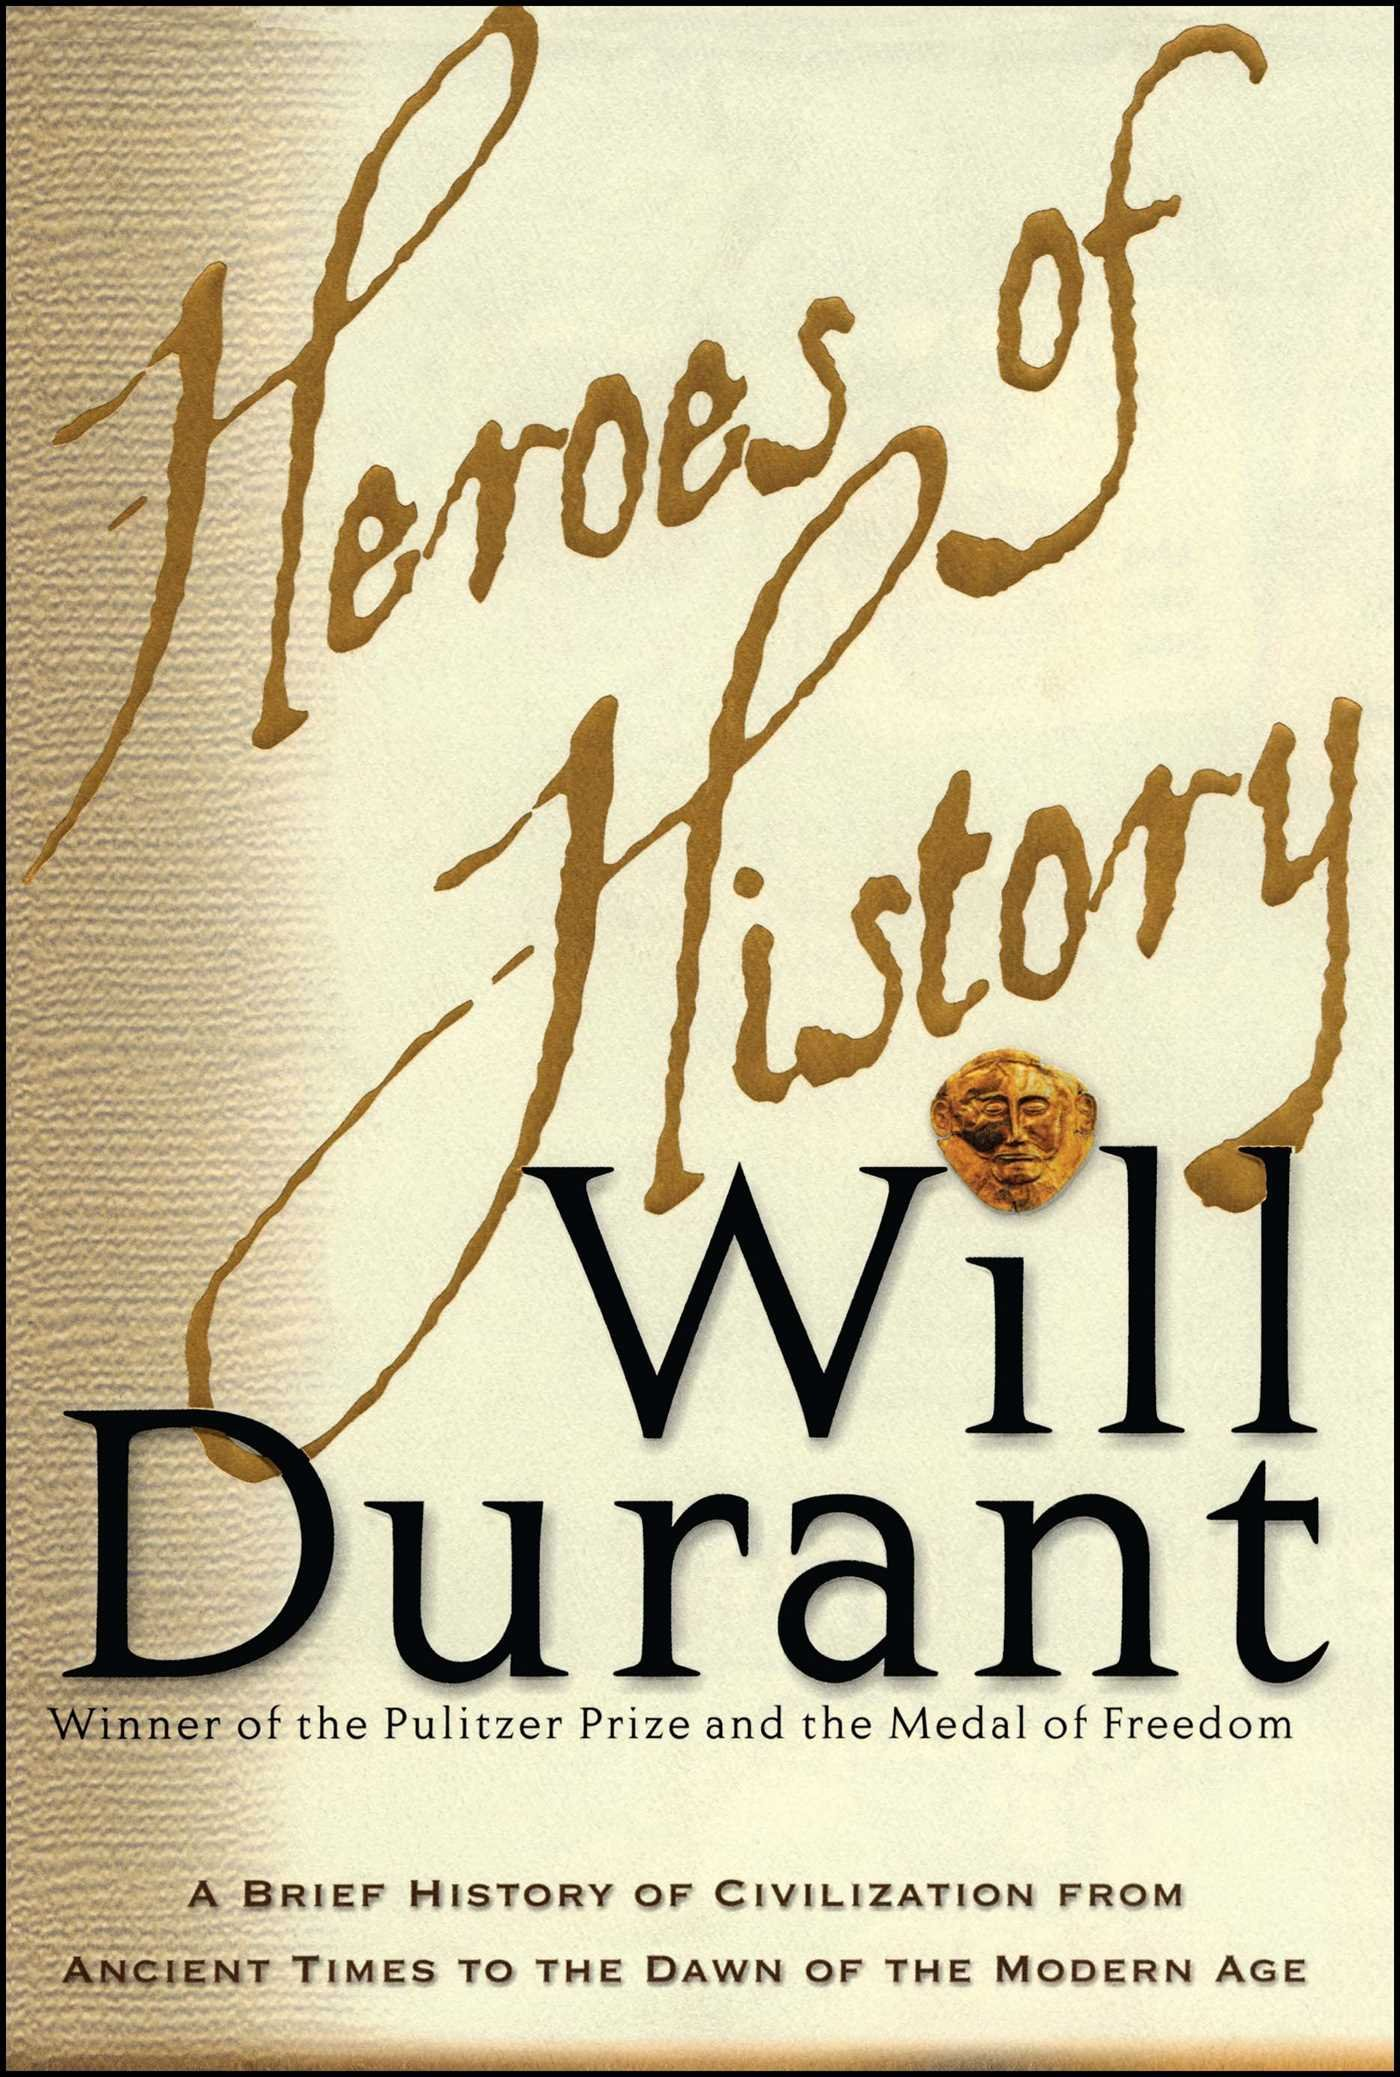 Heroes of History: A Brief History of Civilization from Ancient Times to the  Dawn of the Modern Age: Will Durant: 9780743235945: Amazon.com: Books